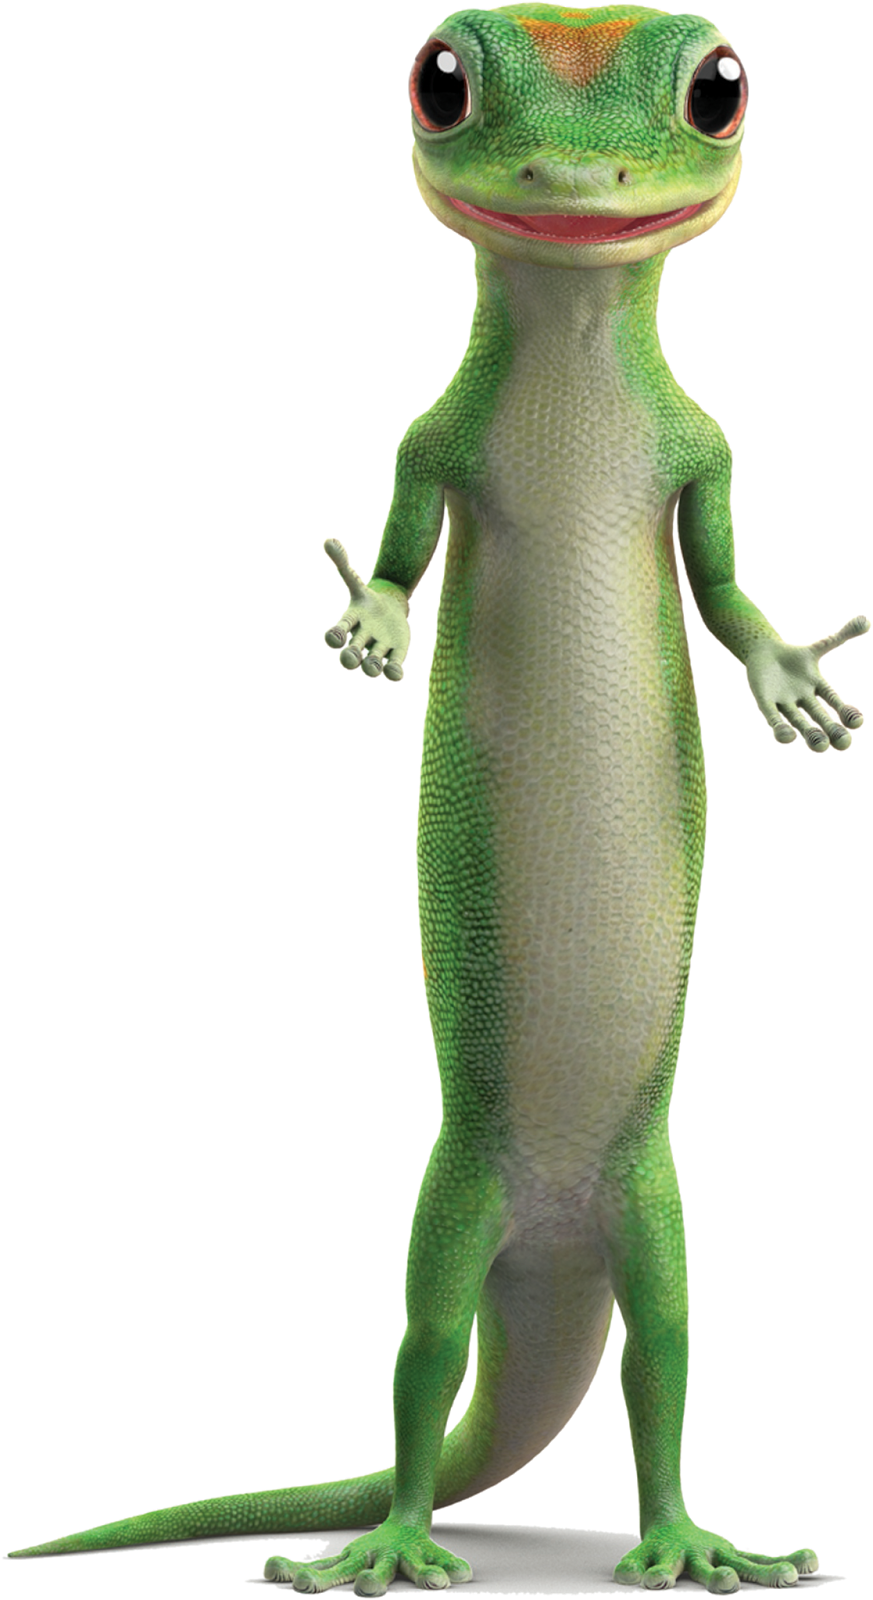 kisspng-geico-advertising-campaigns-gecko-insurance-lizard-5af984aa1b3257.1350746615263018661114.png